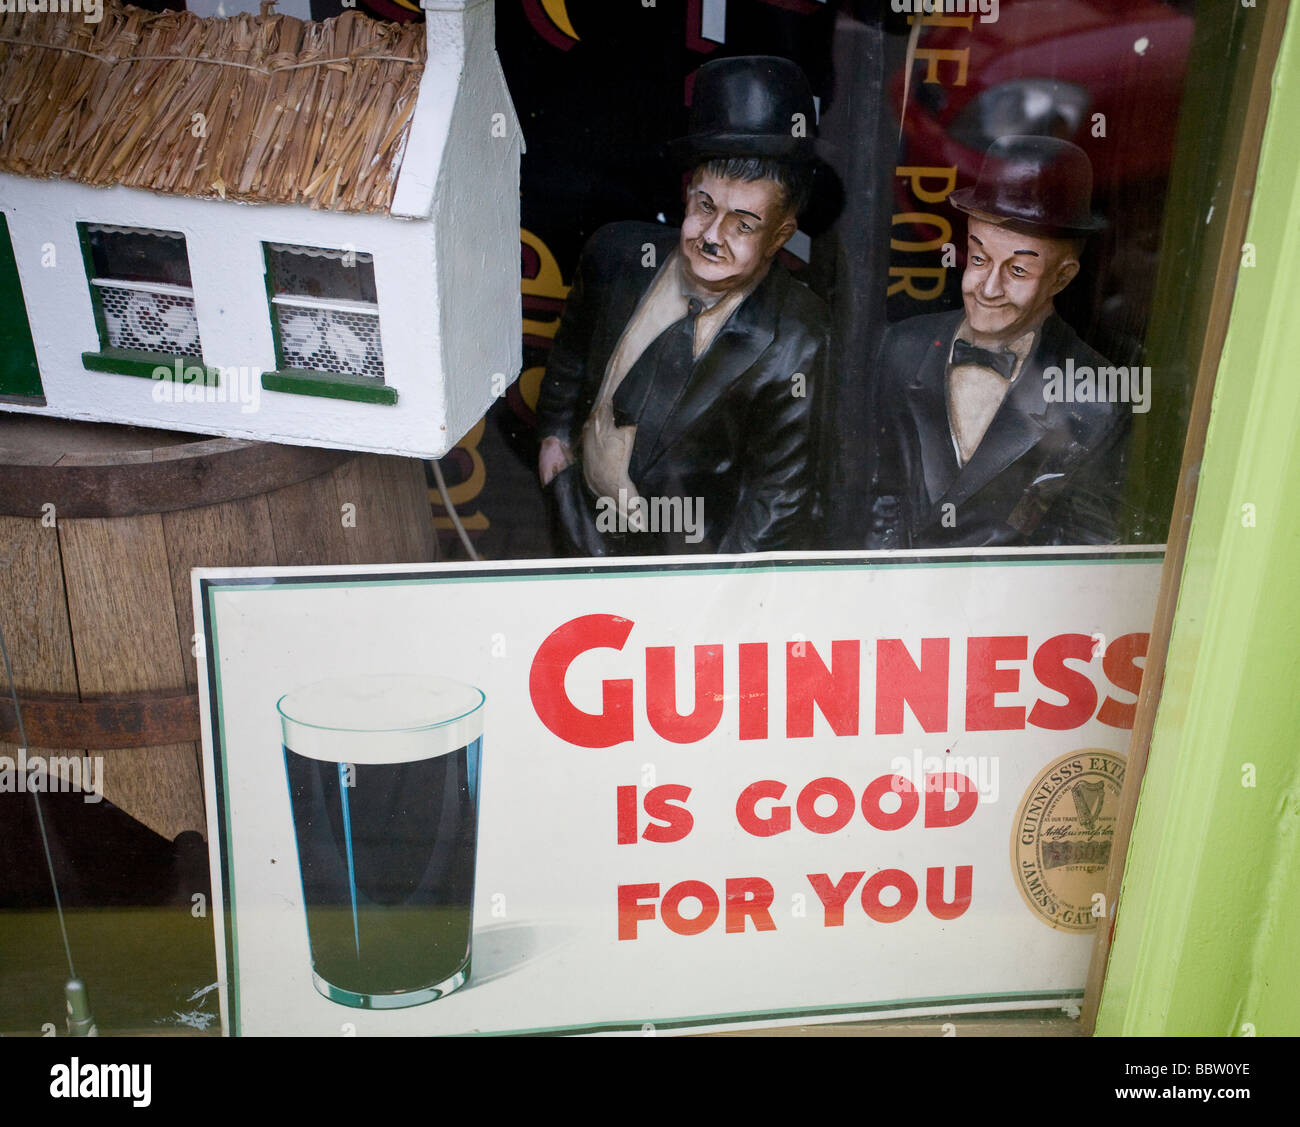 Guinness is Good for You: Comedy. Laurel and Hardy  statues seem to be endorsing the famous Guinness slogan - Stock Image